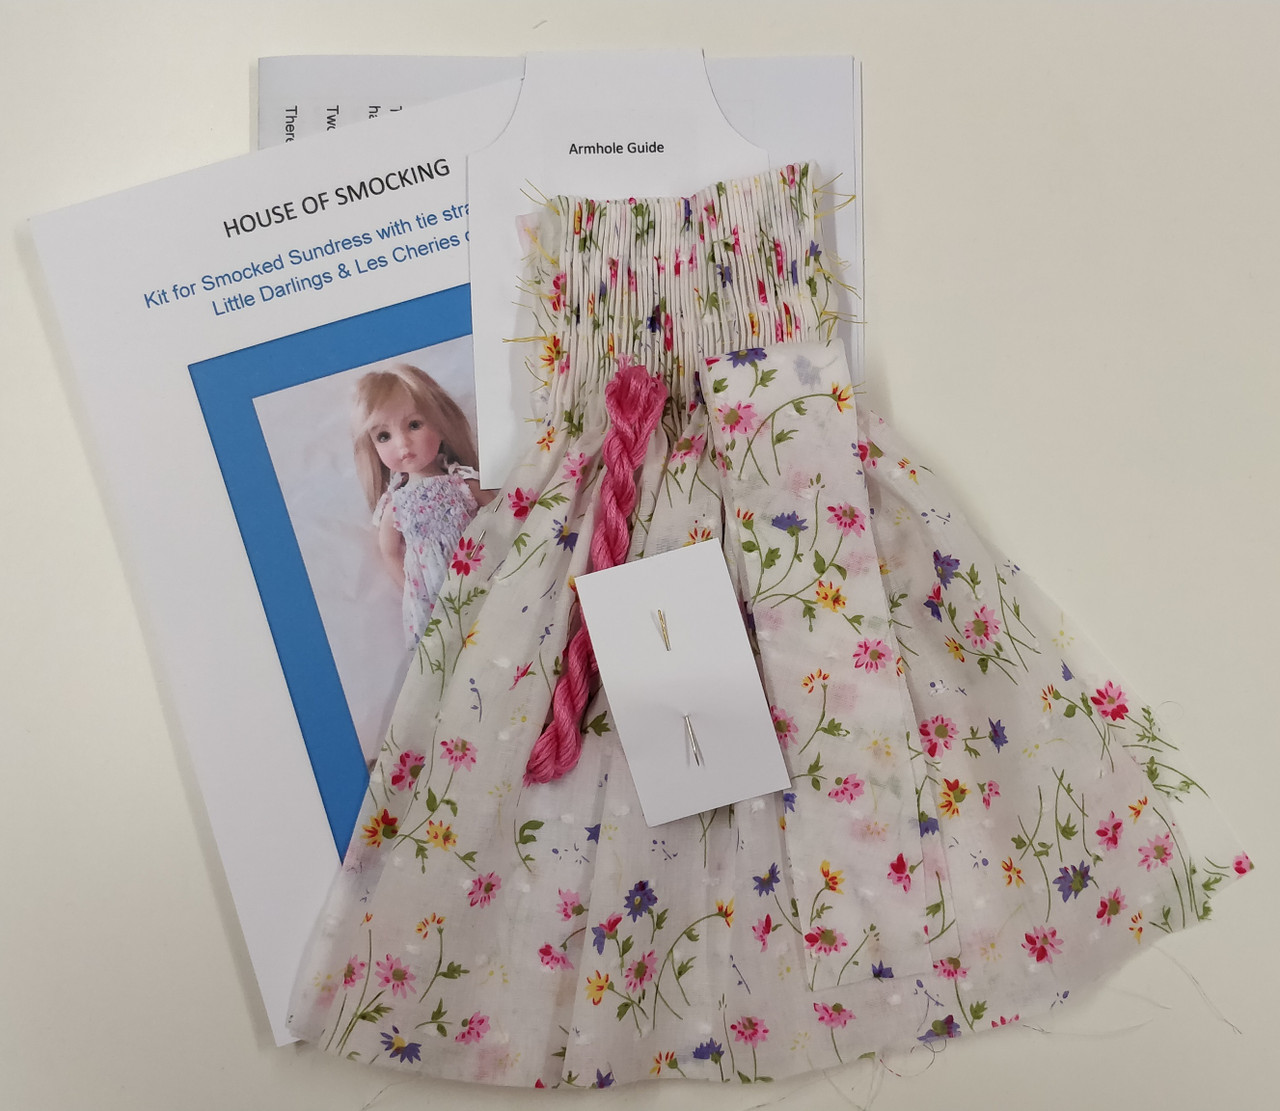 This is a kit for a sundress, smocked front and back with, tie shoulder straps Contents include,  Step by step instructions, Two smocking designs, Pre-pleated fabric for front and back, 2 x bias strips for straps, DMC thread, 1 x crewel needle Armhole cutting guide, Available in 5 colours,